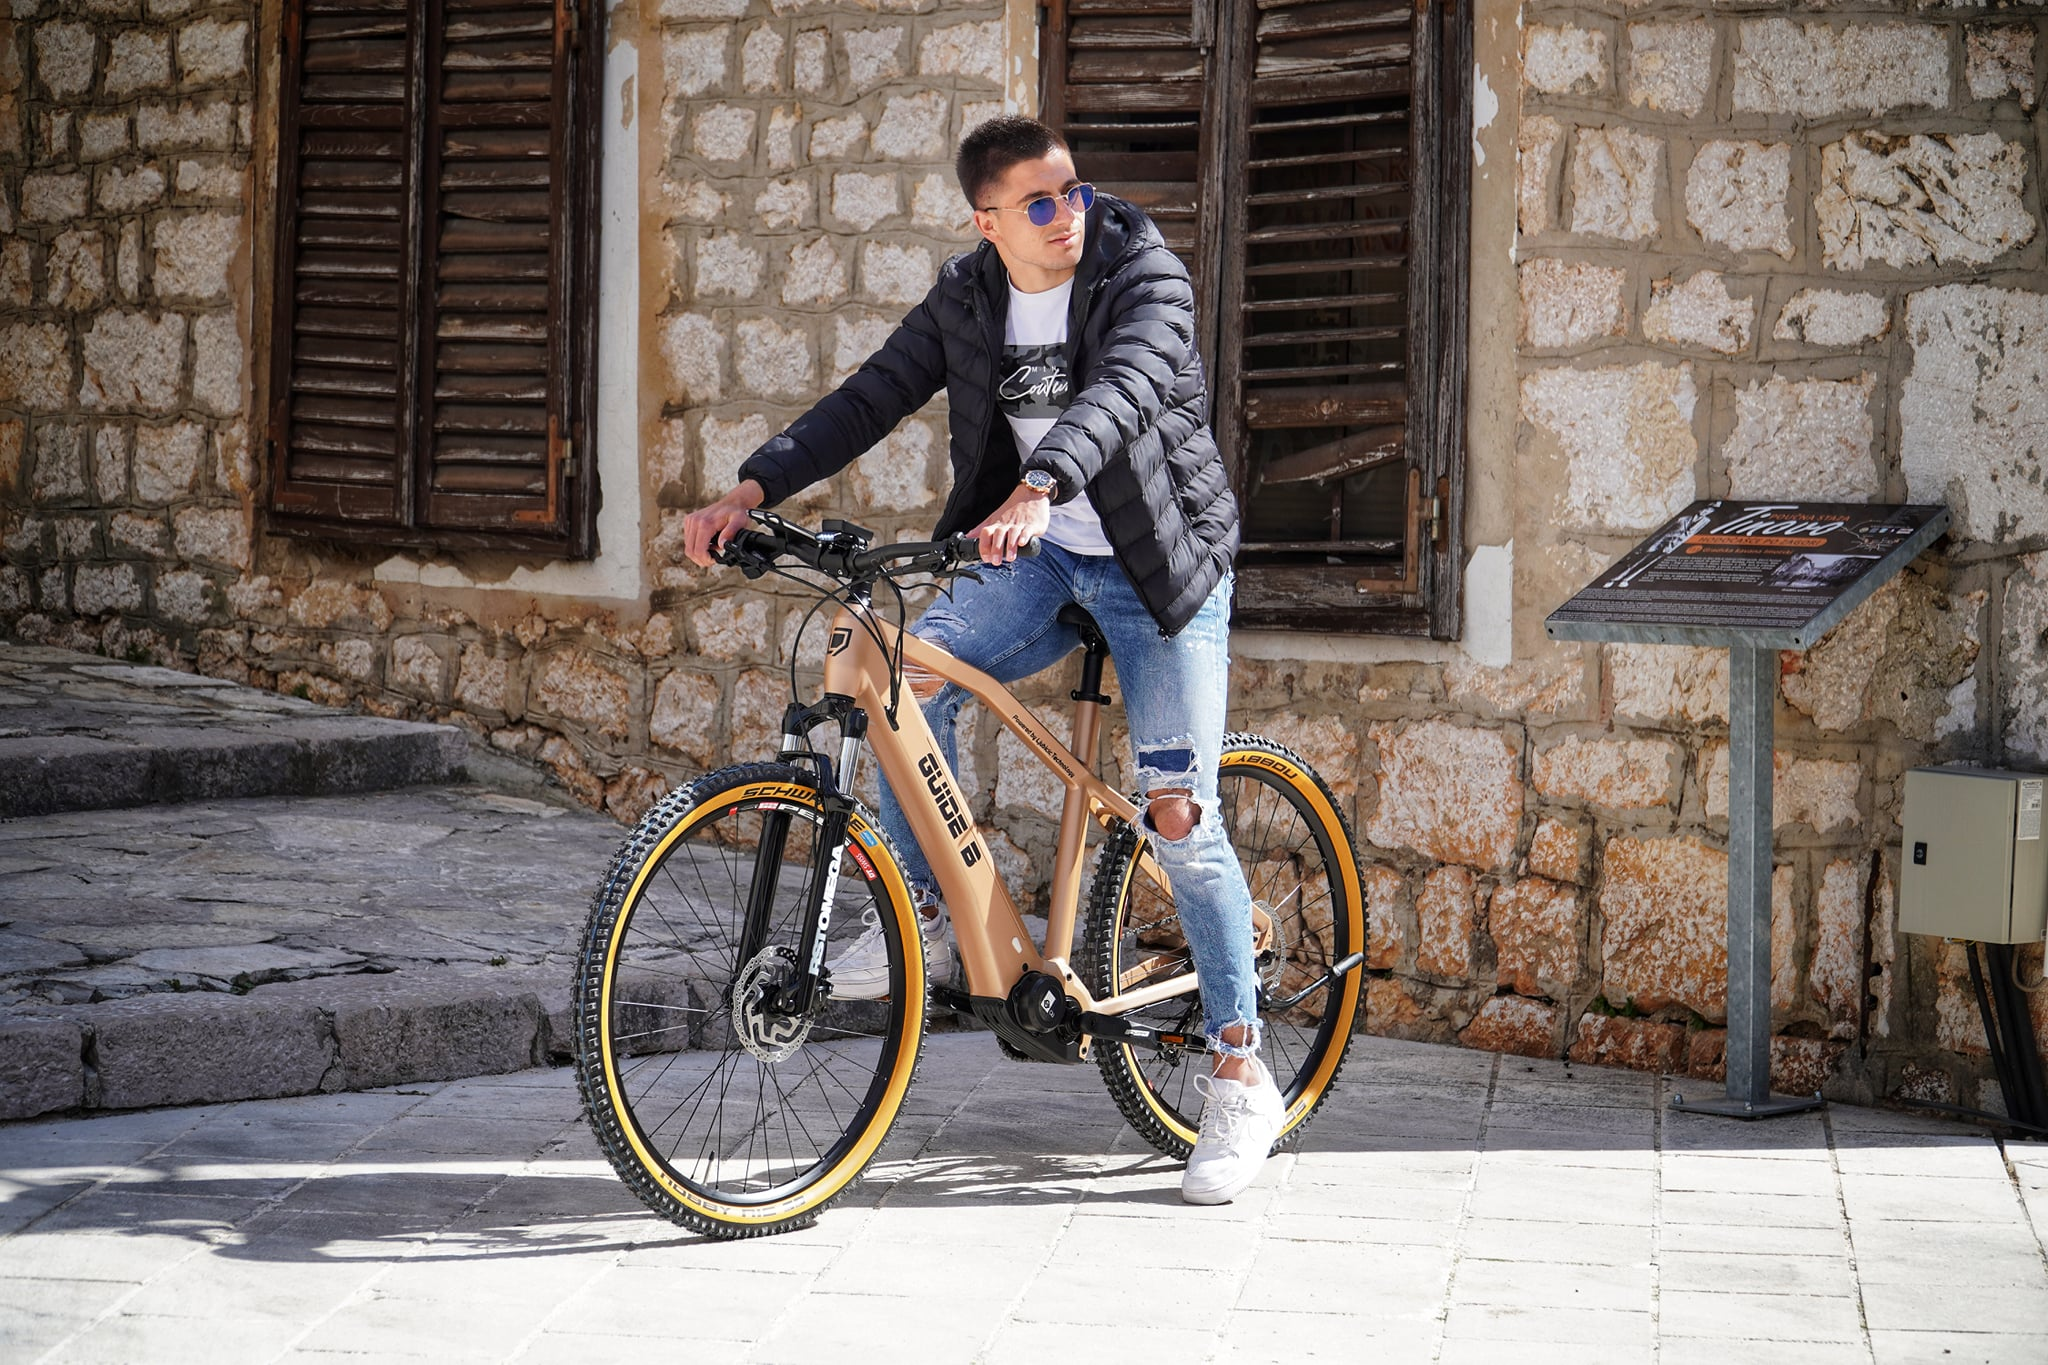 Young Croatian innovator presents new electric bicycle which serves as a tourist guide